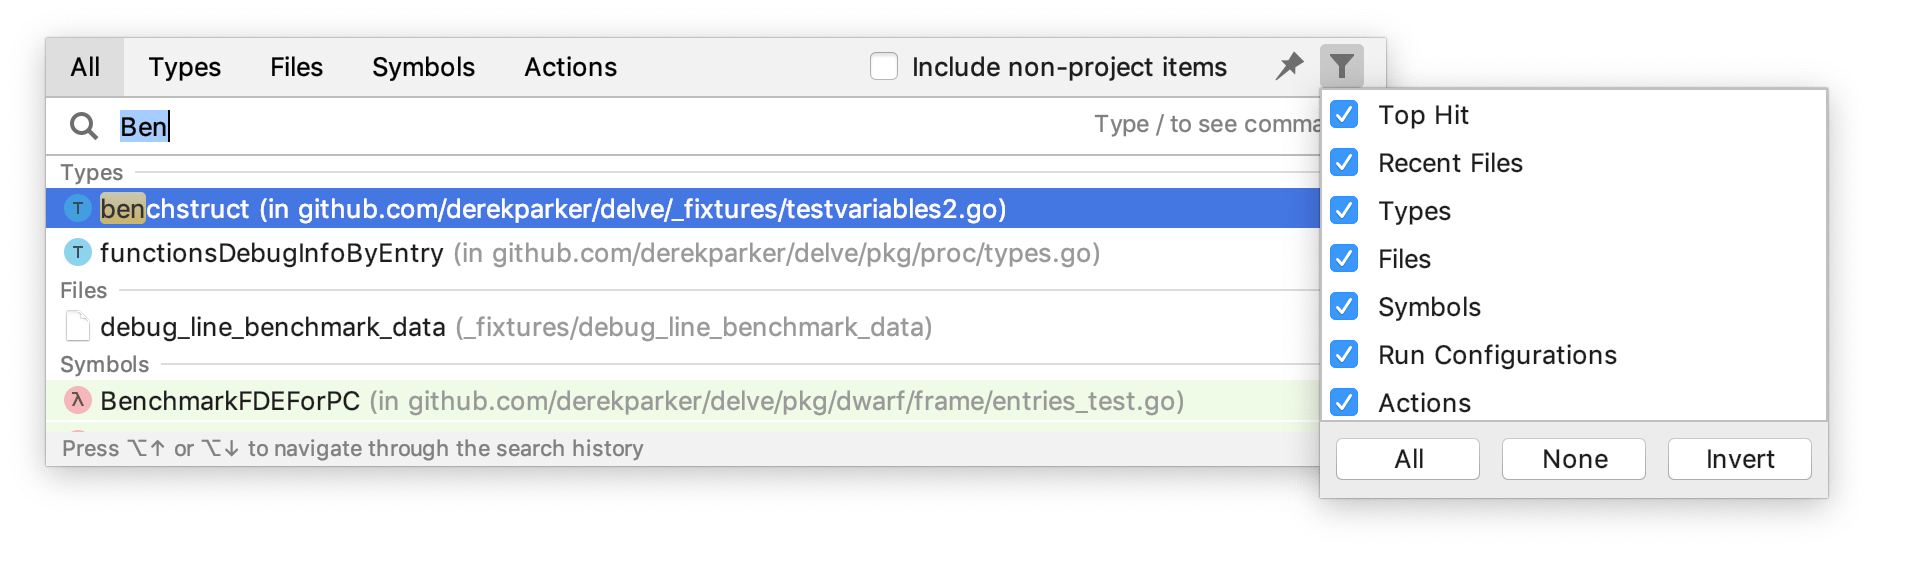 Exclude file types from search